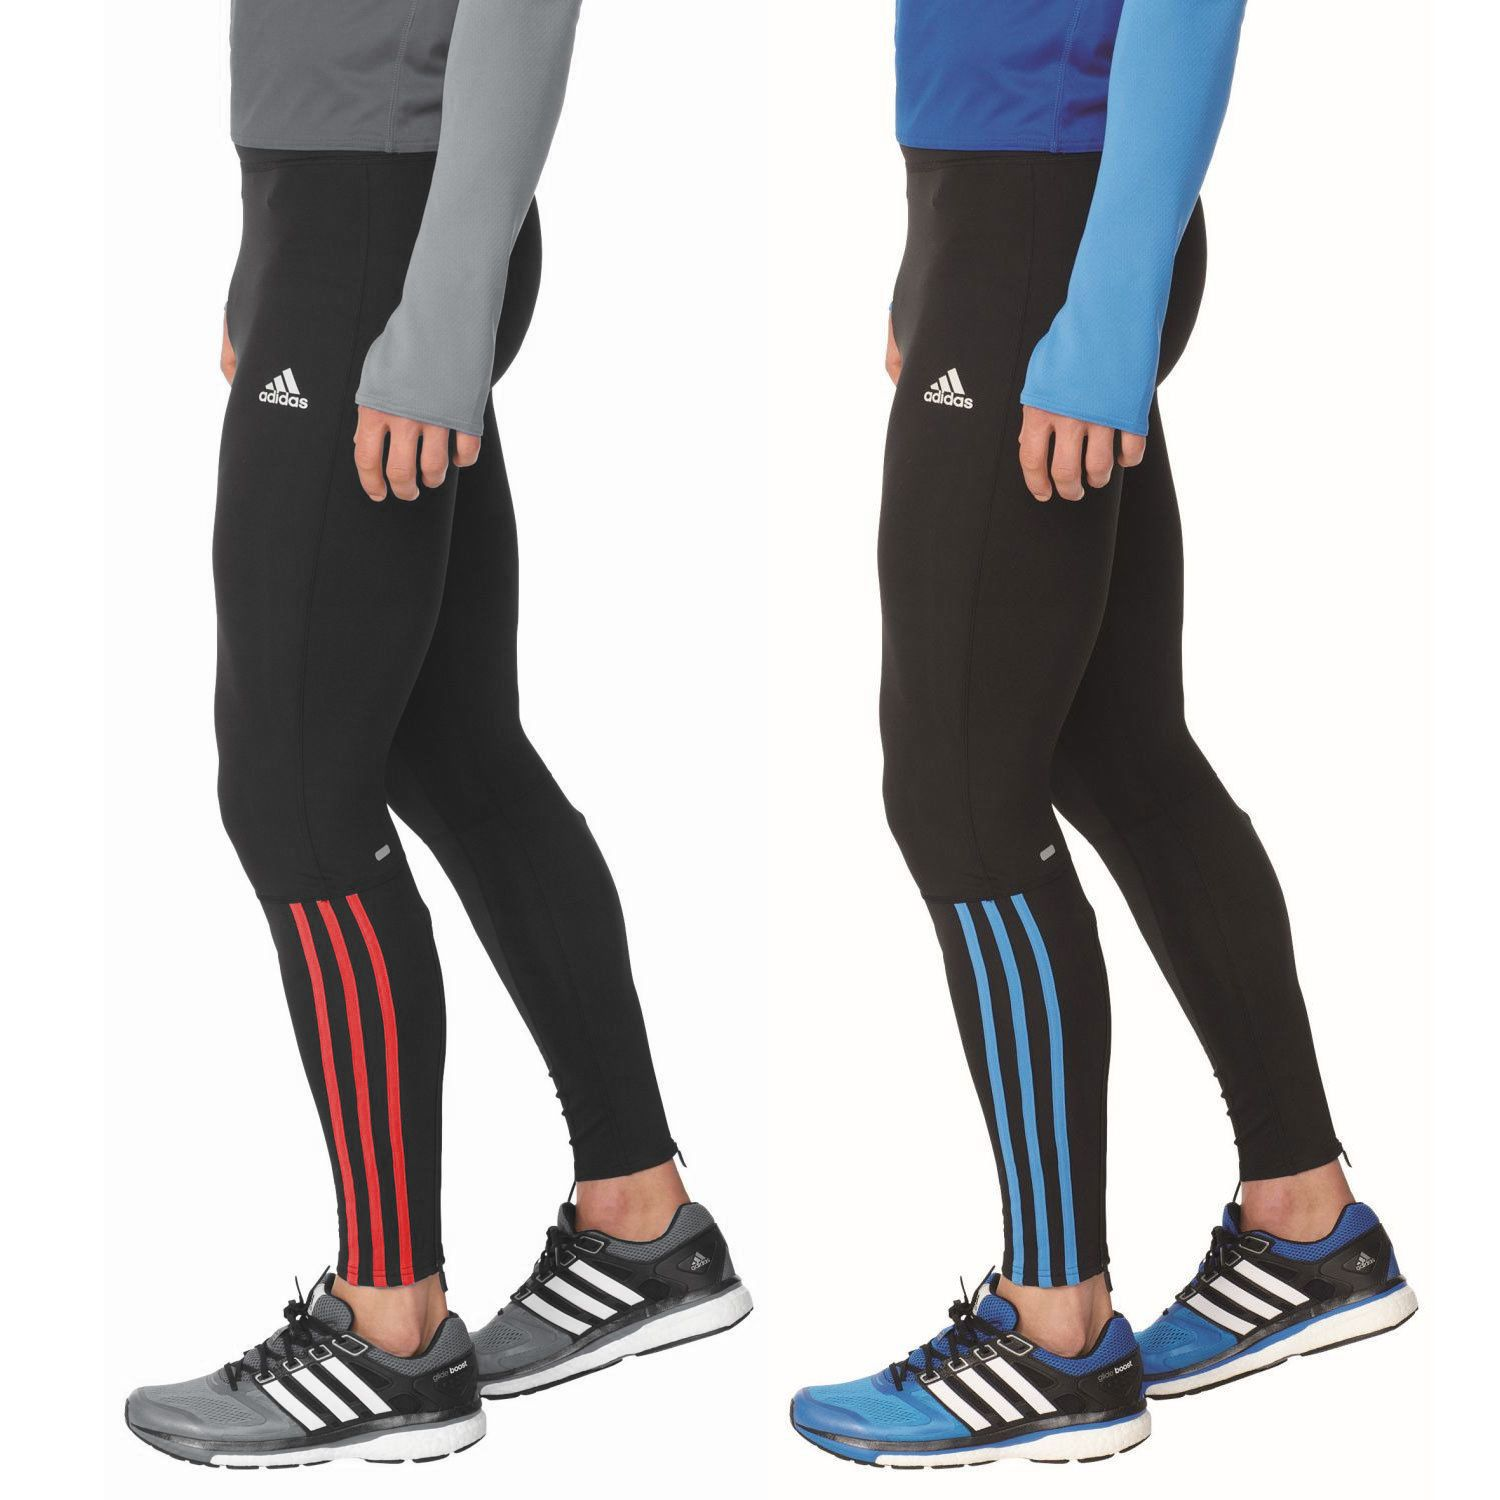 adidas Response Mens Long Running Tight Leggings Yoga Gym